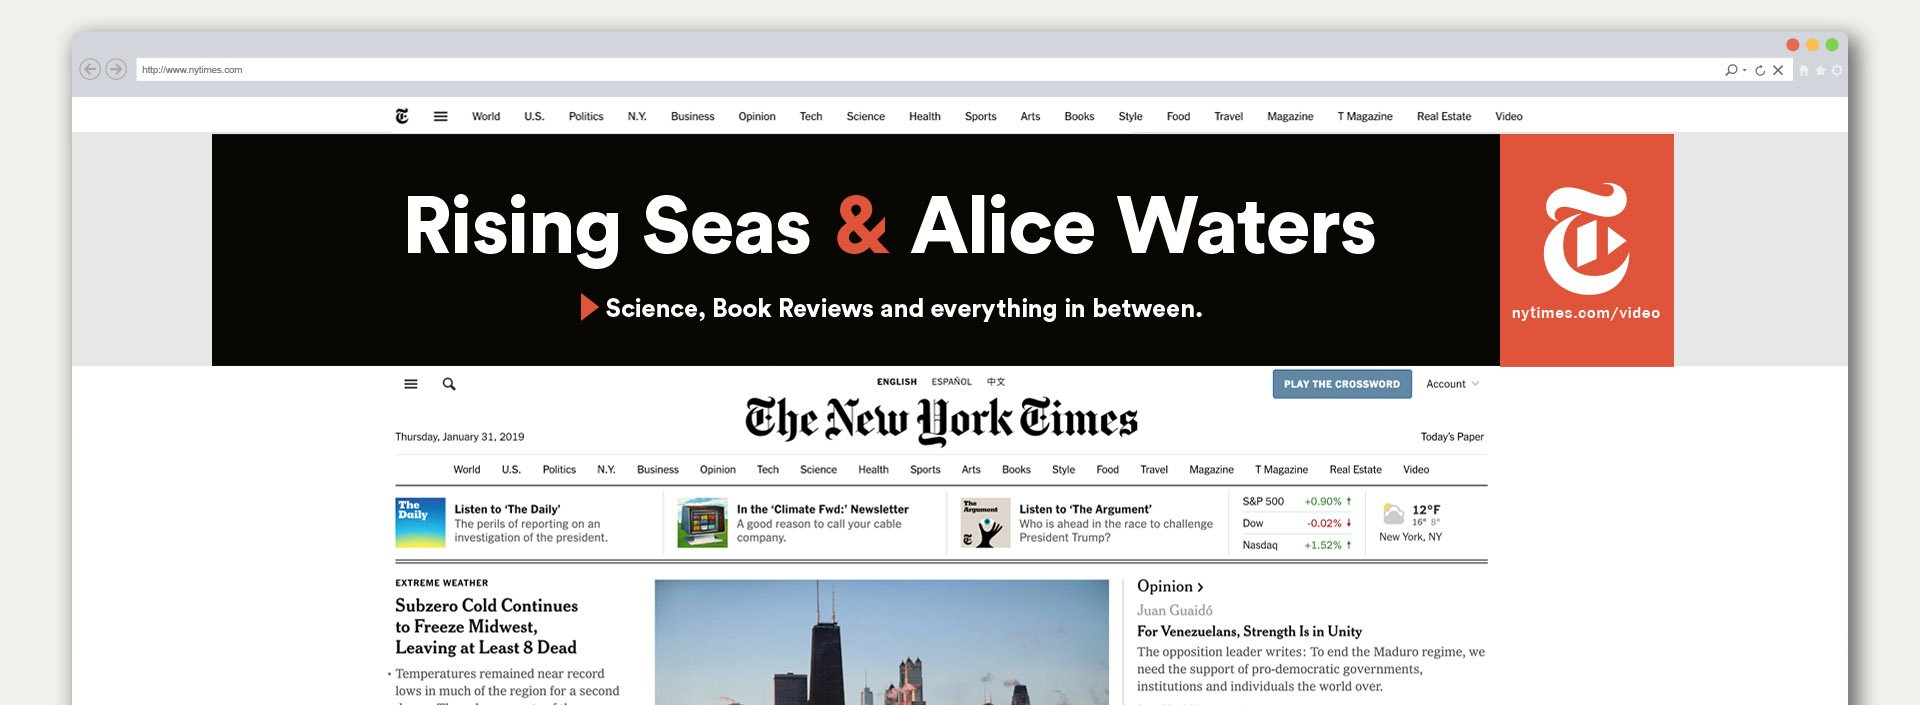 New York Times Campaign banner ad